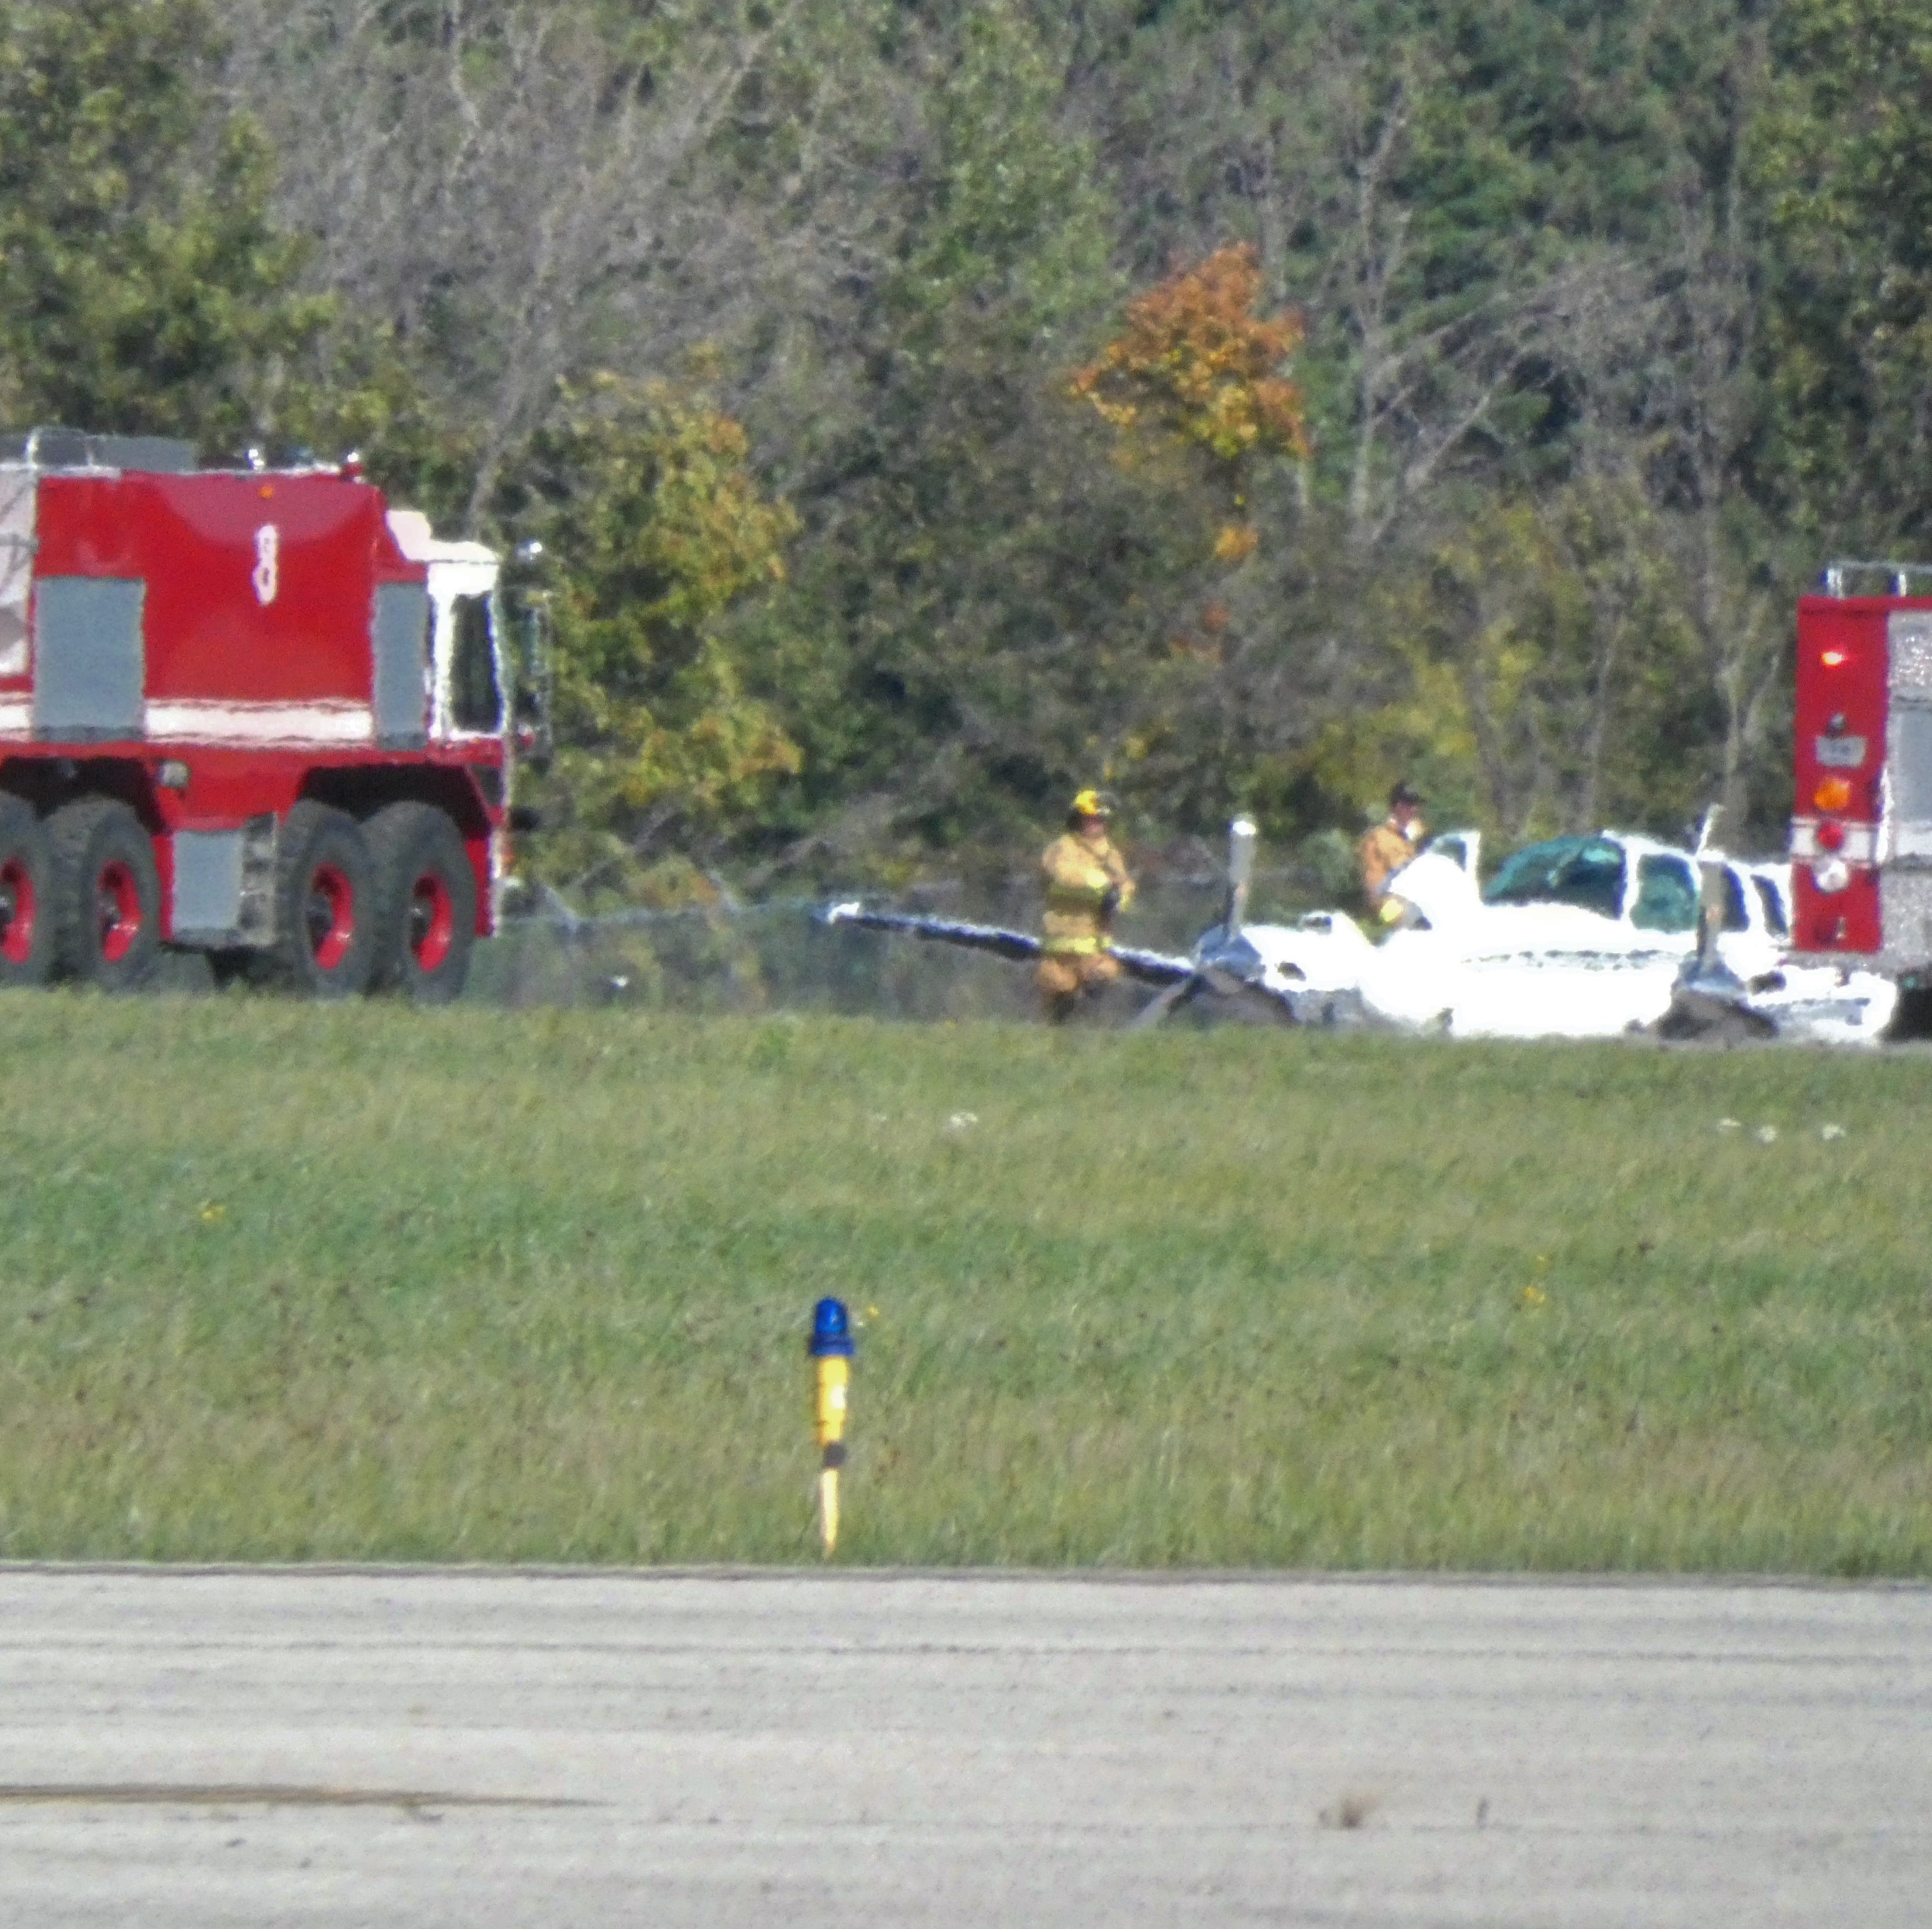 Emergency landing at Lahm Airport; no injuries